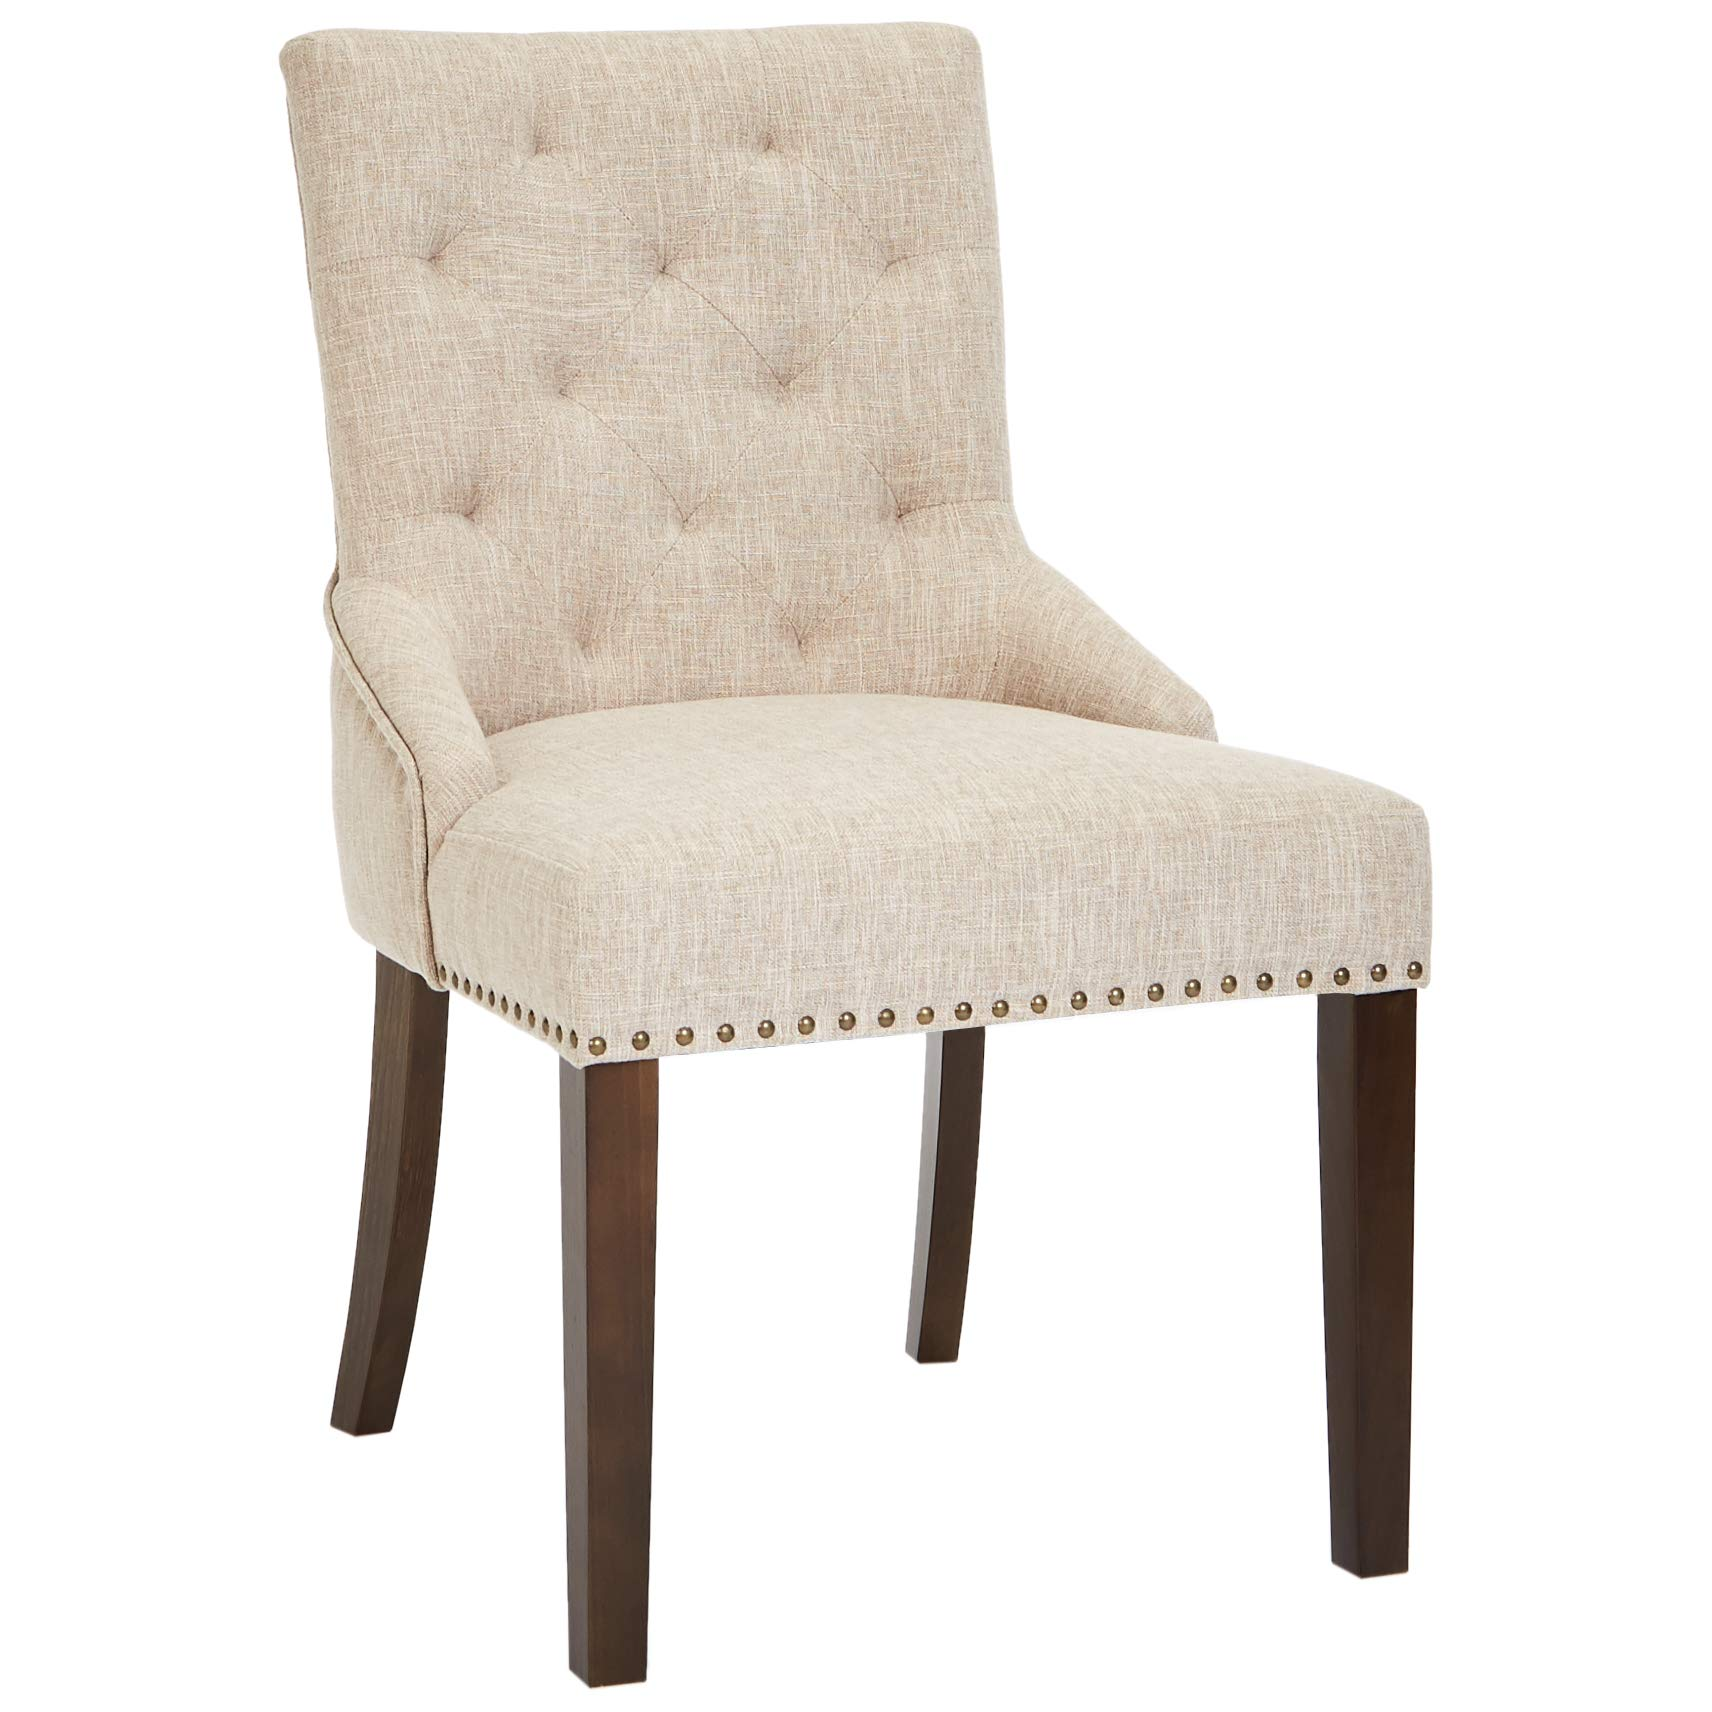 Red Hook Martil Upholstered Dining Chair with Nailhead Trim, Biscuit Beige, Set of 2 by Red Hook (Image #5)